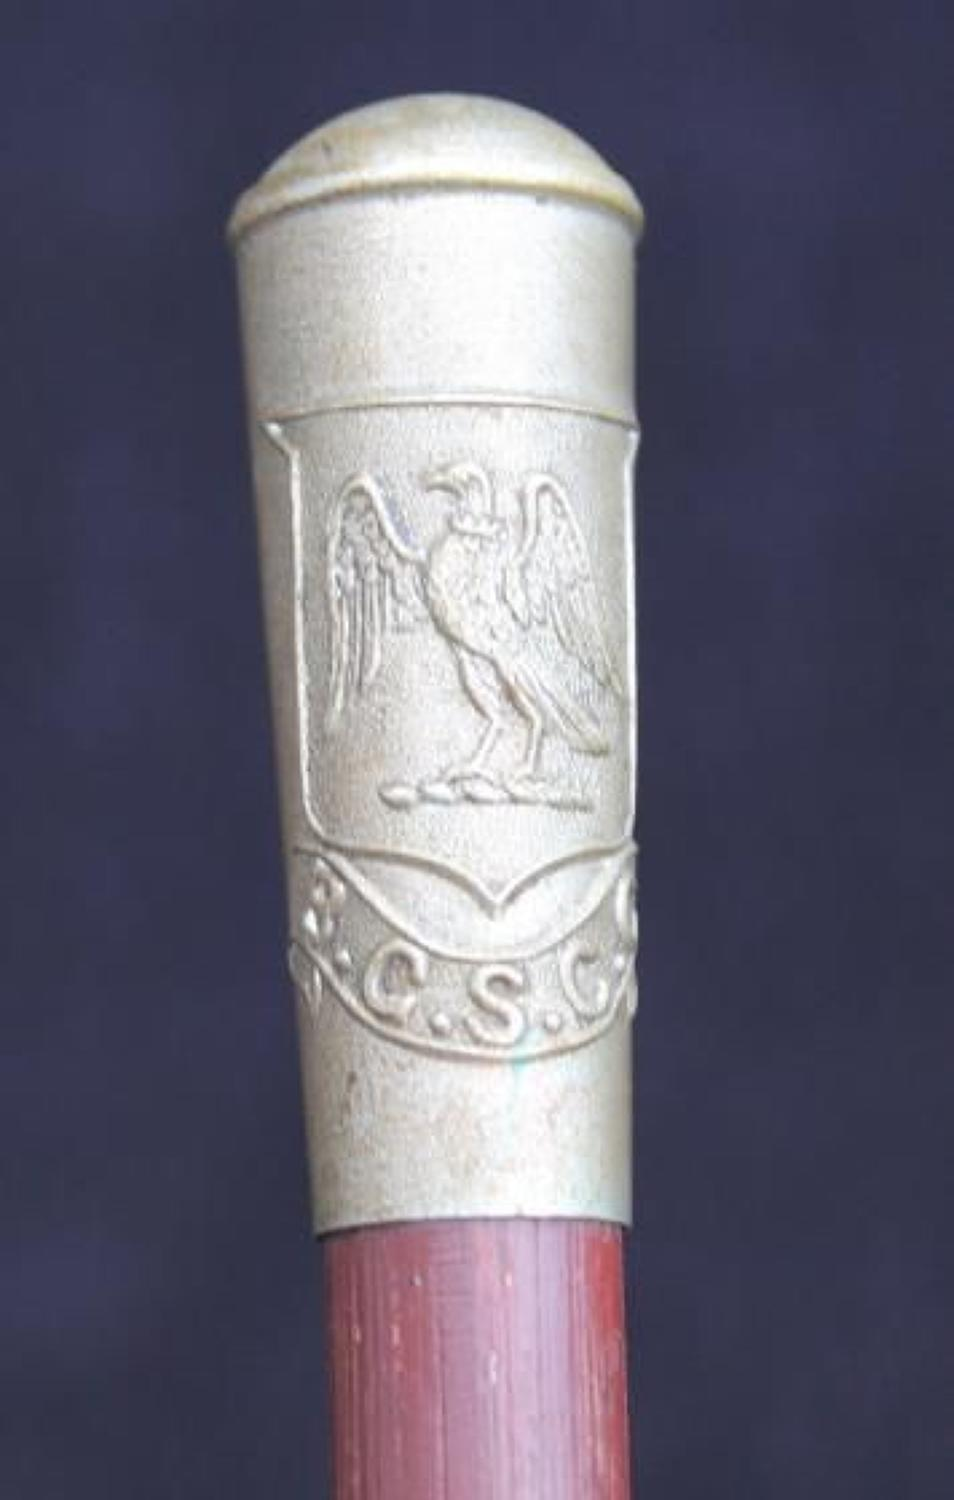 B.G.S.C.C Swagger Stick